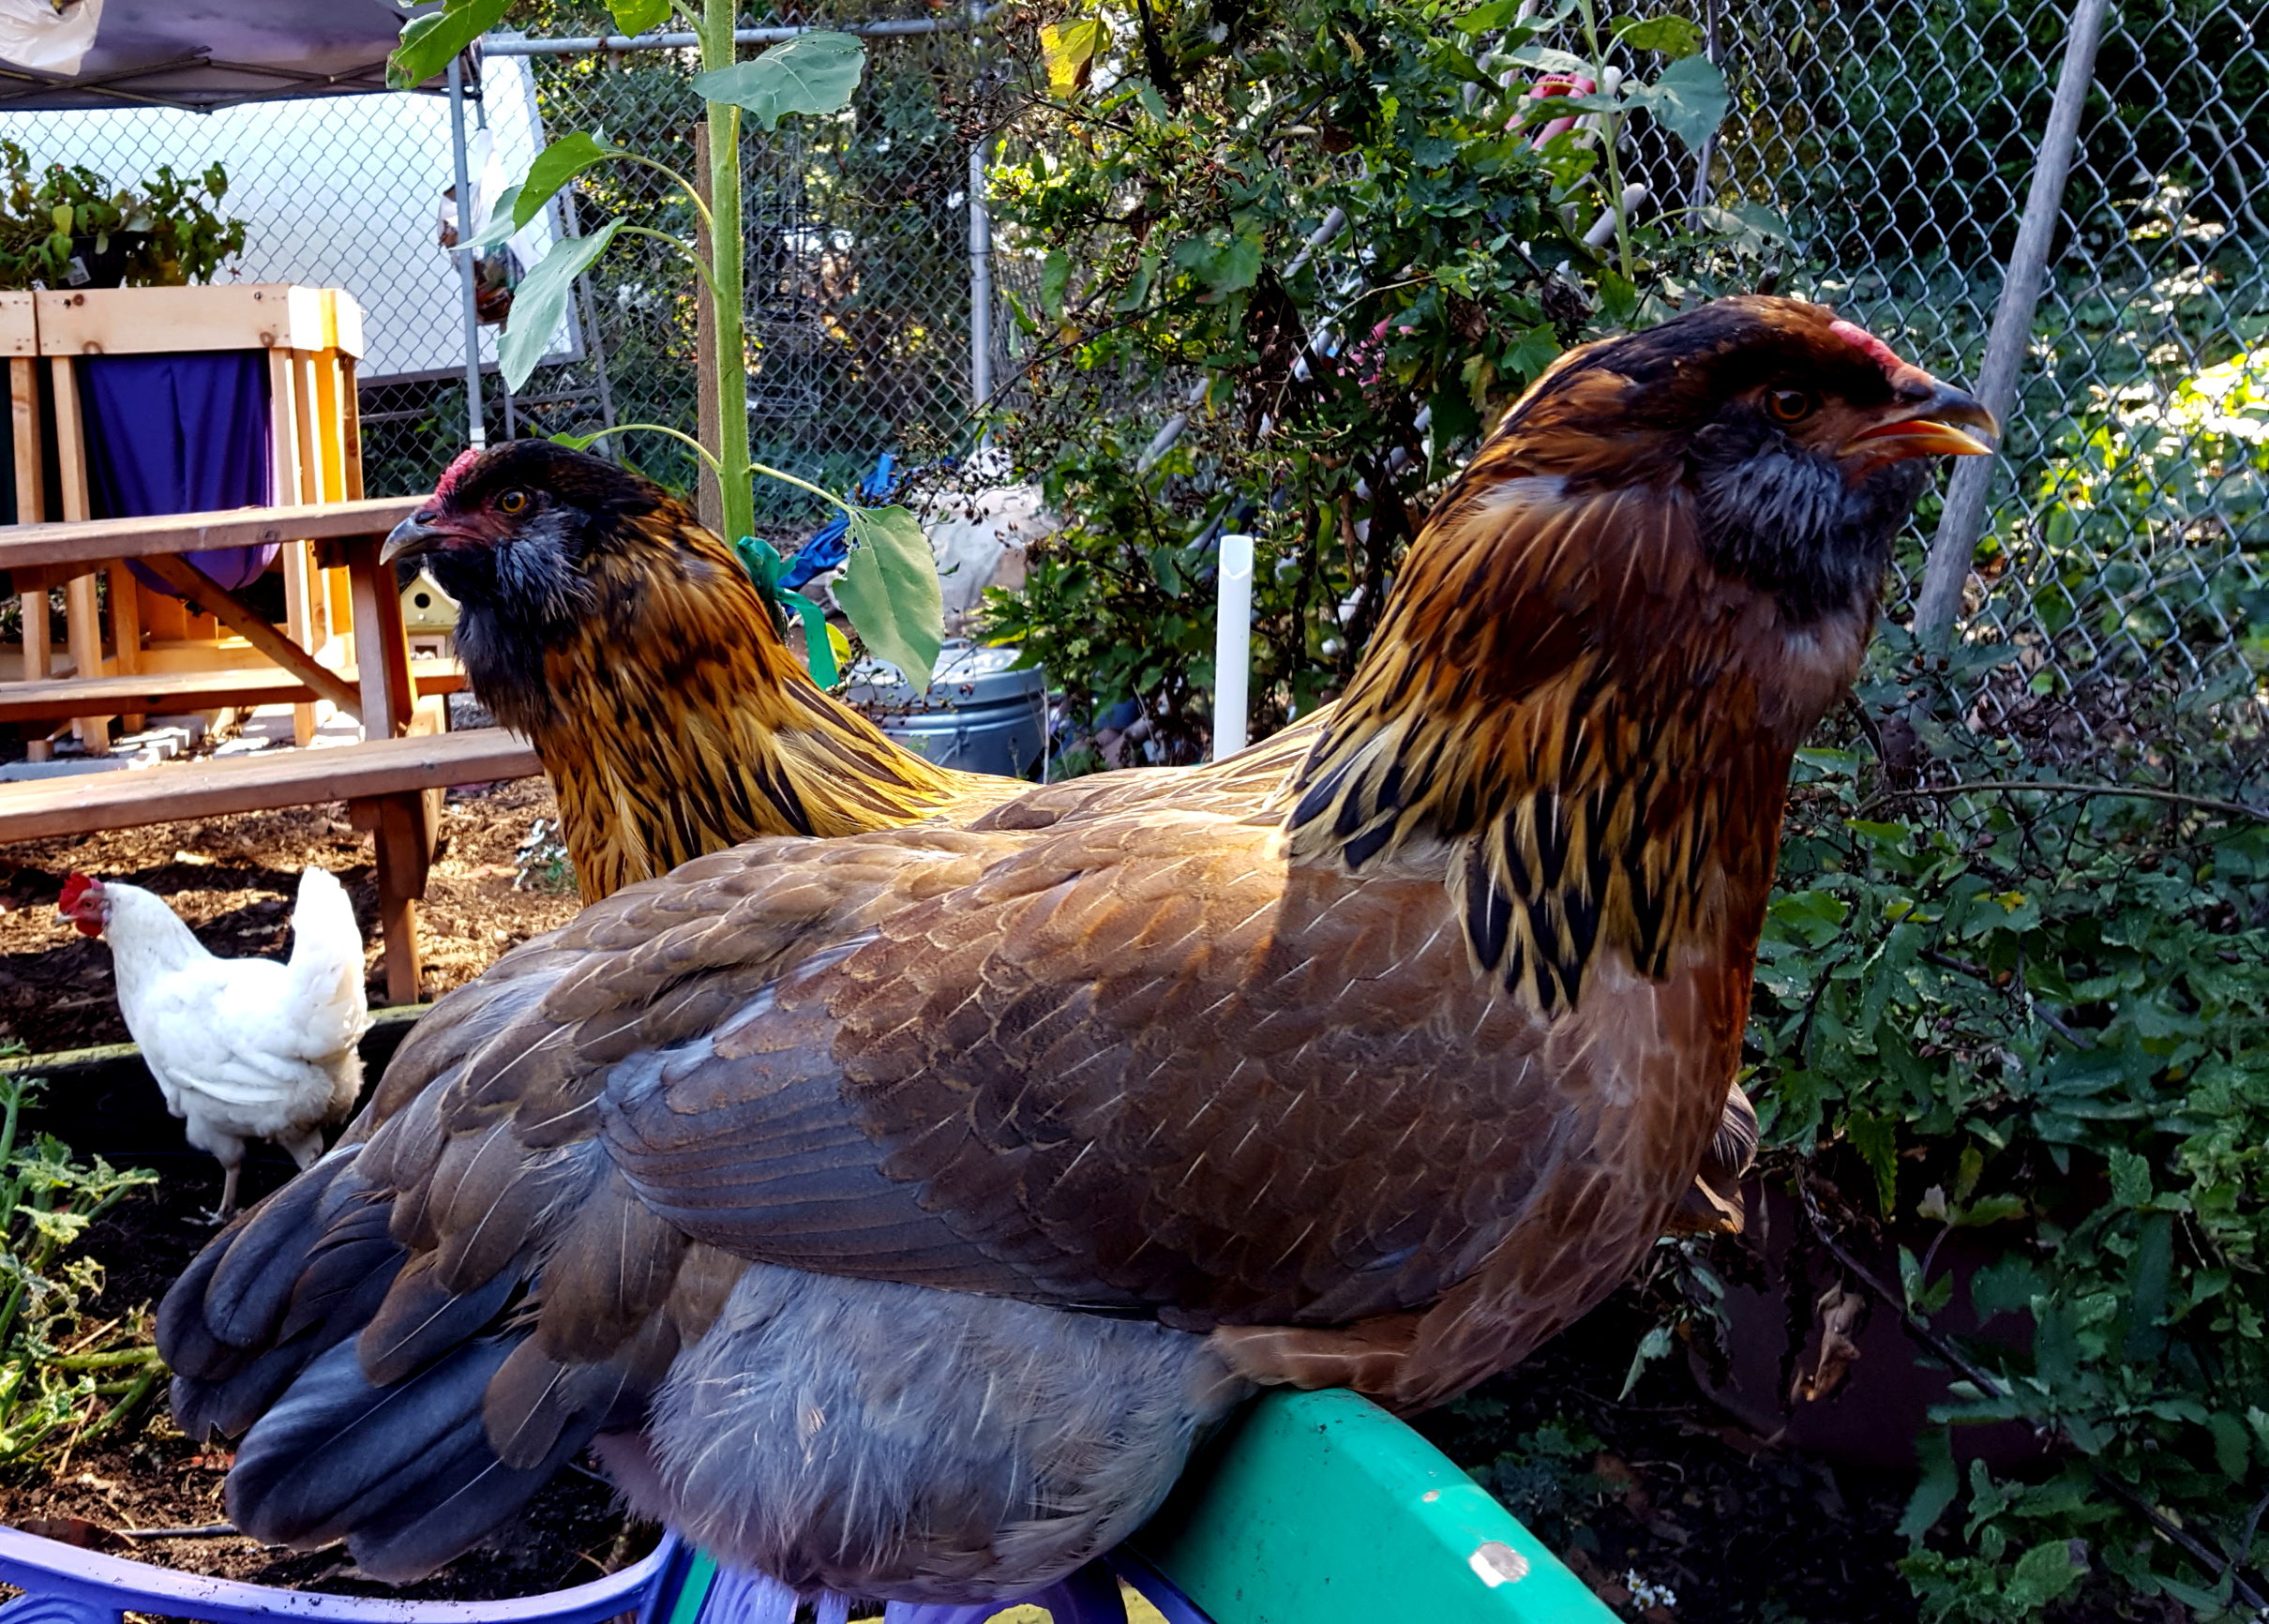 chickens_rocket_rosie_bench_talking_630x451